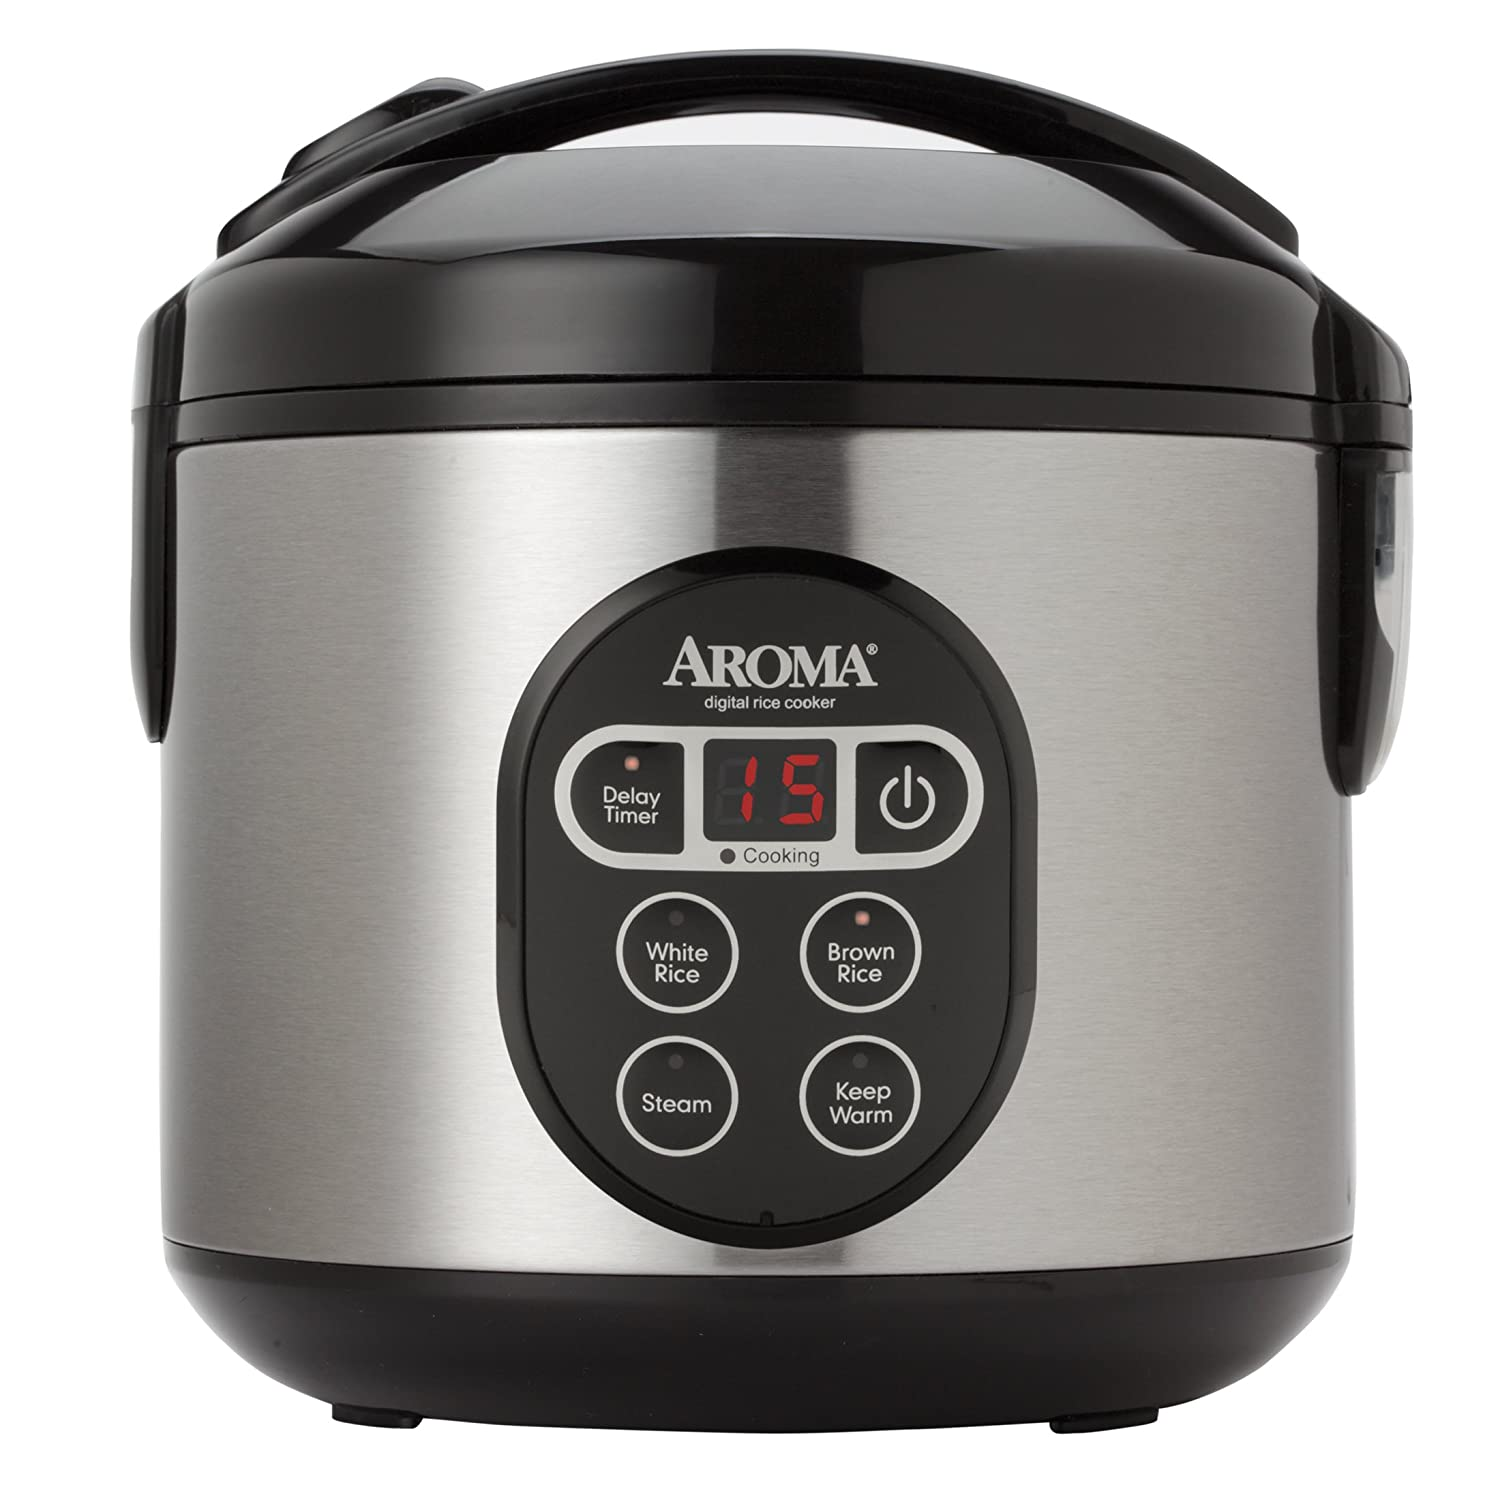 Review Aroma 8-cup rice cooker and food steamer with digital timer